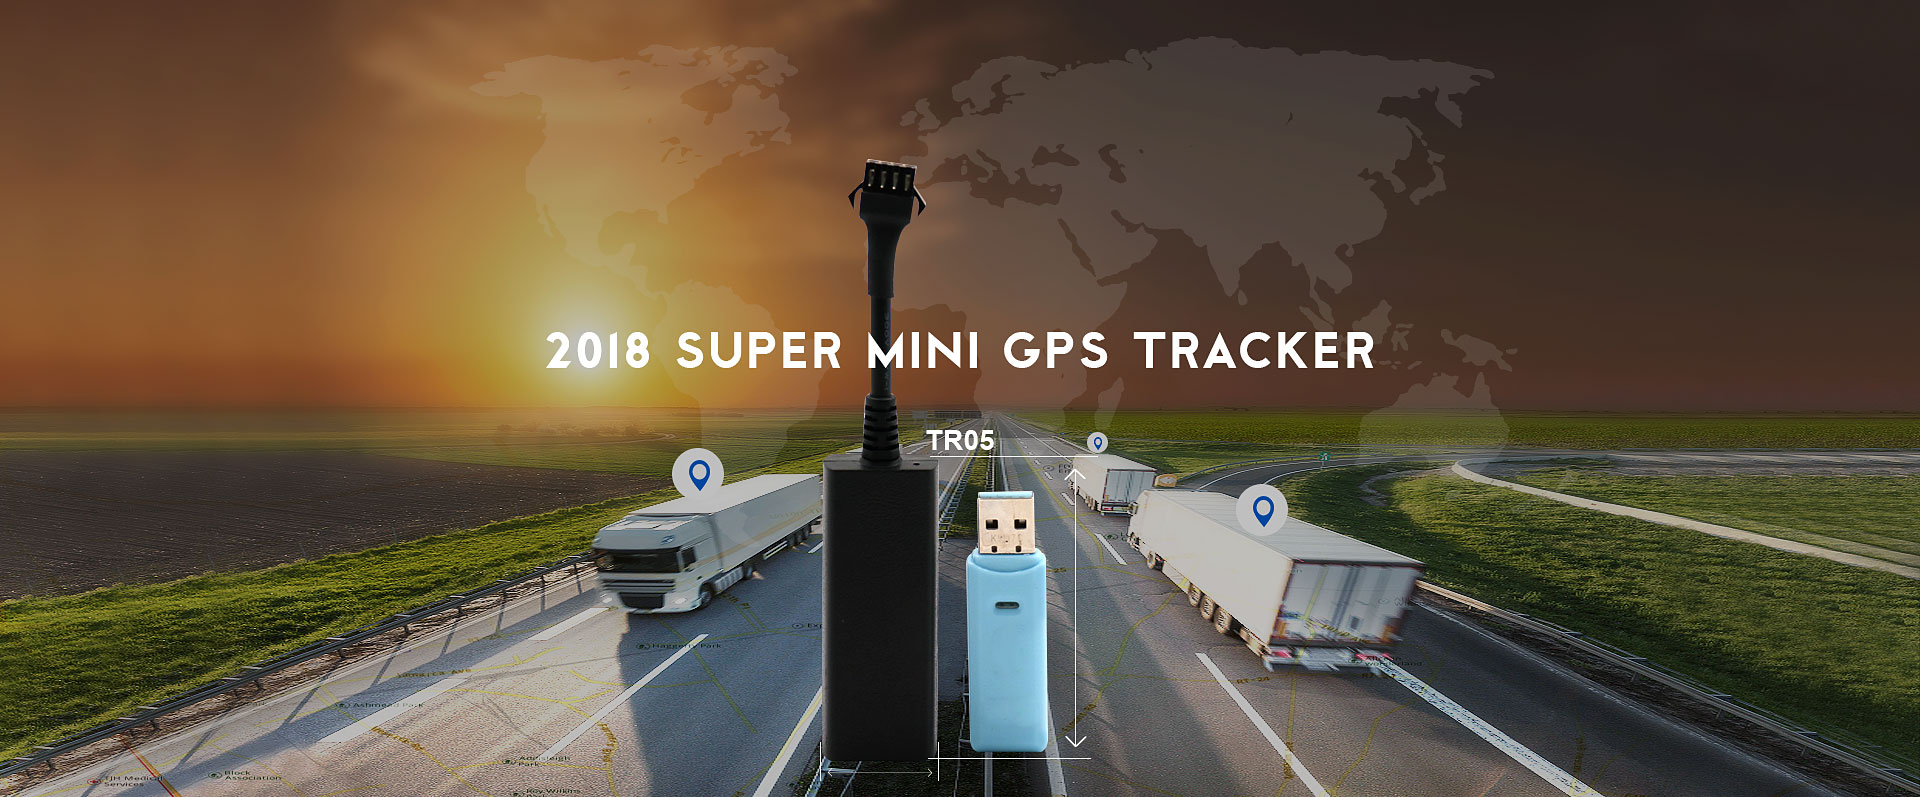 gps tracking device tracker